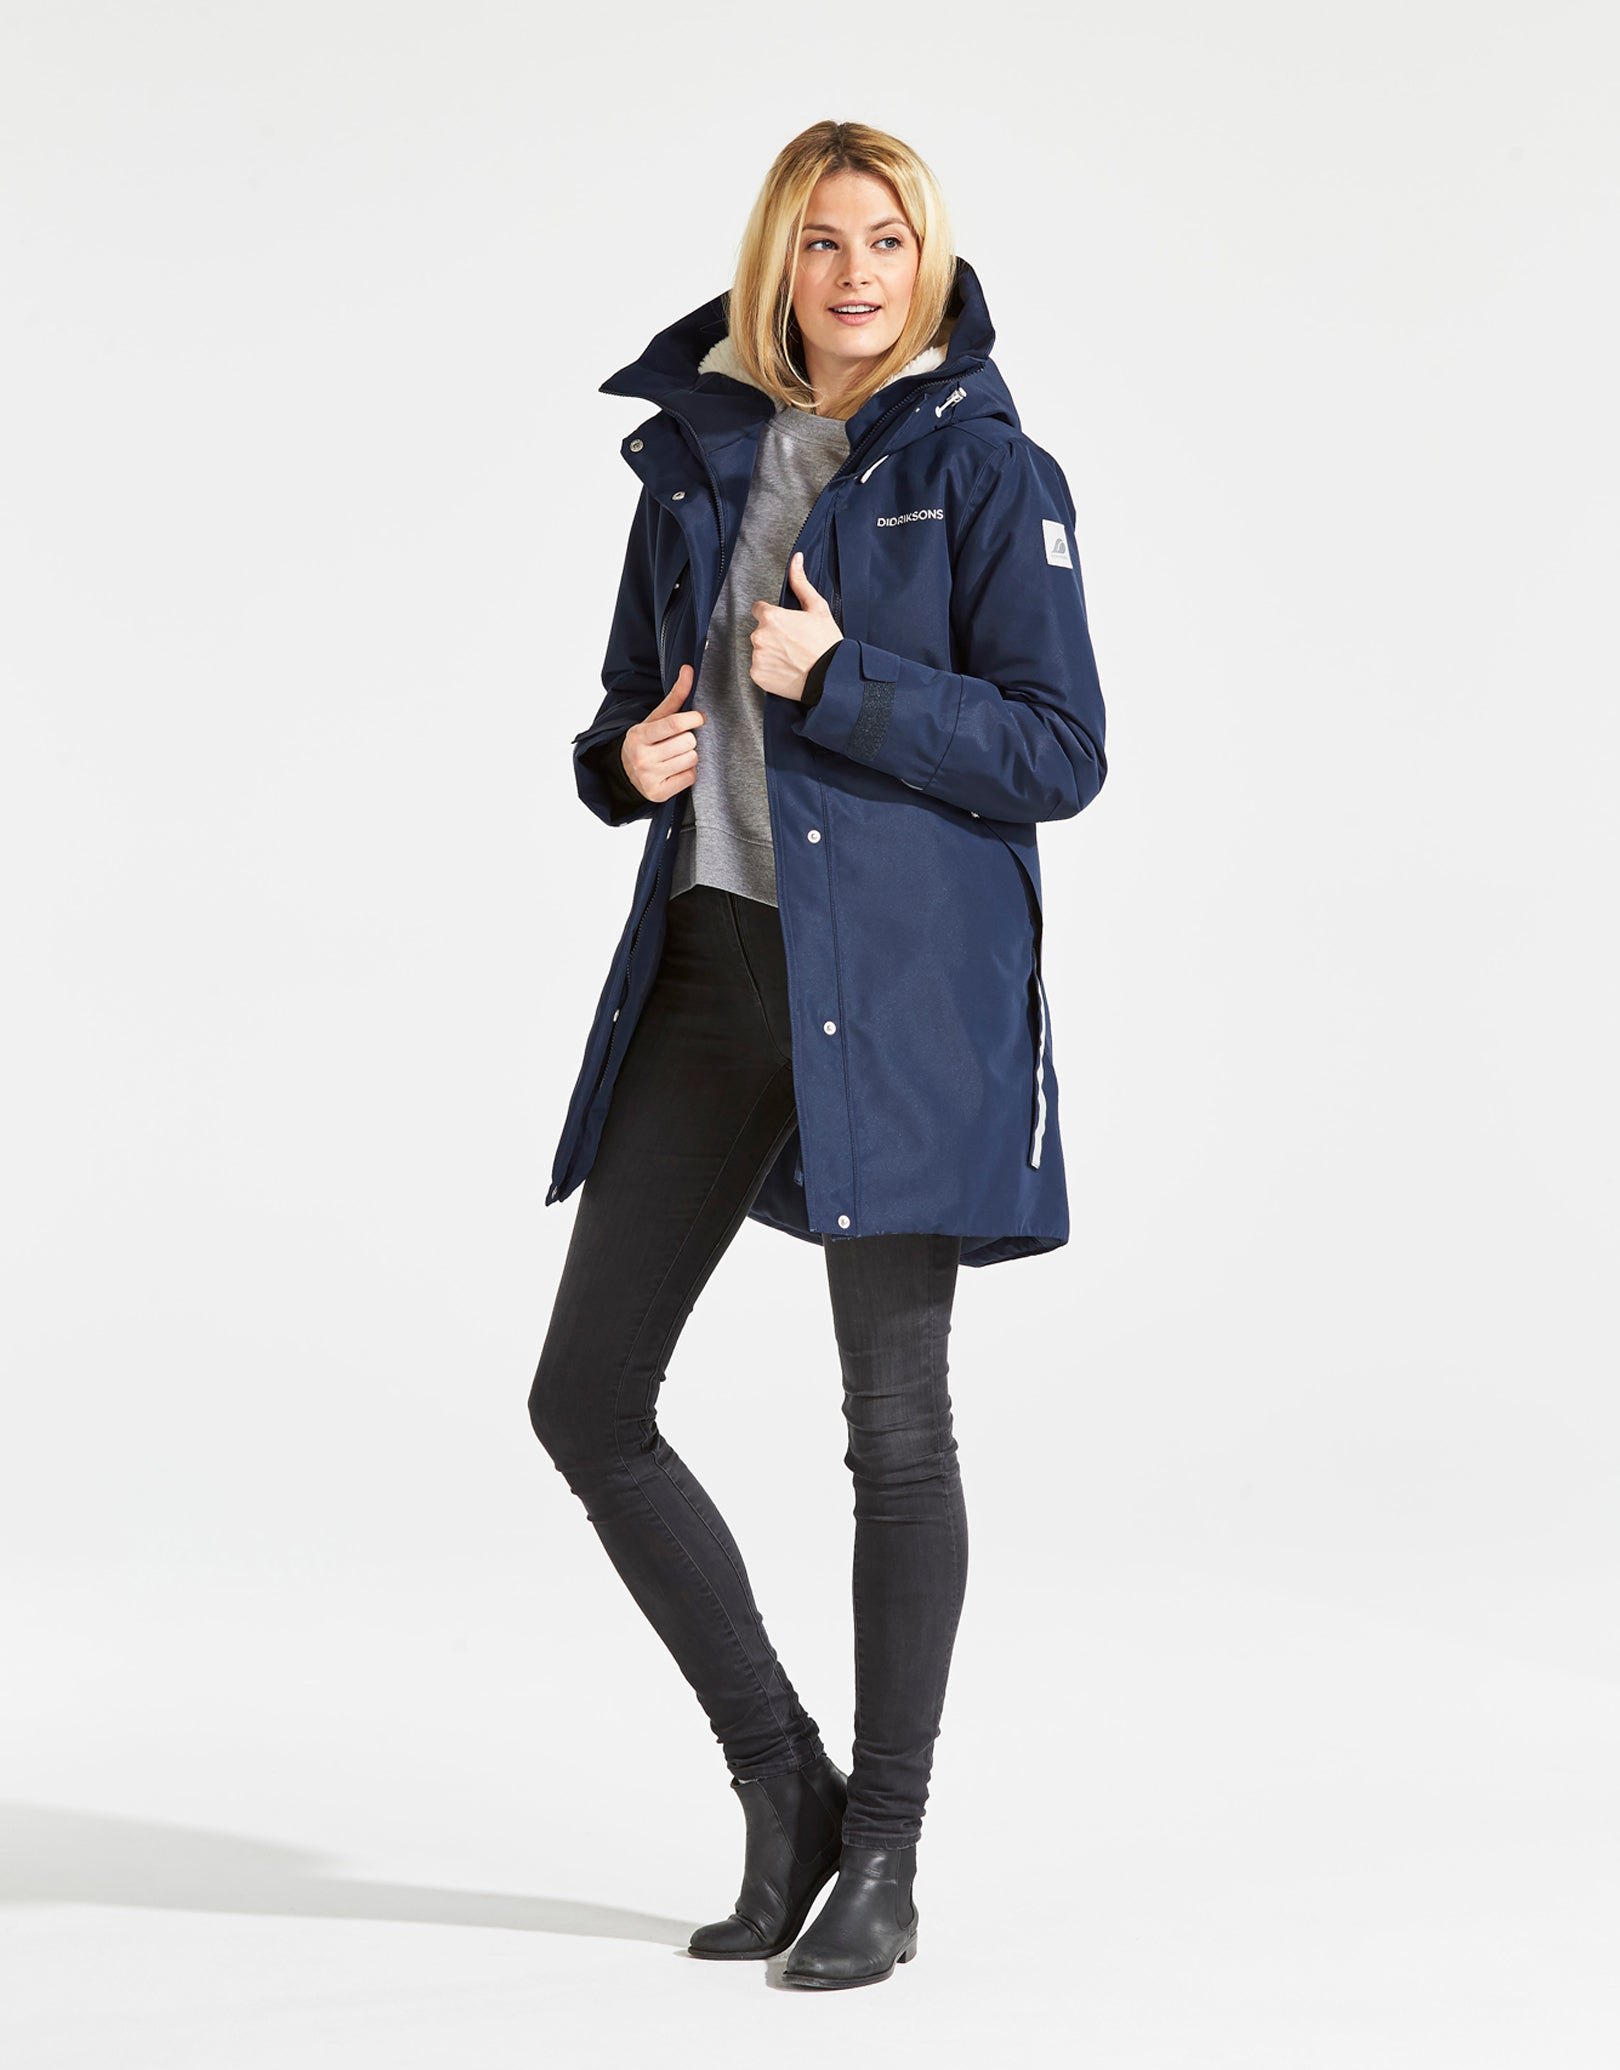 Details about Didriksons Silje 3 Womens Insulated Waterproof Parka